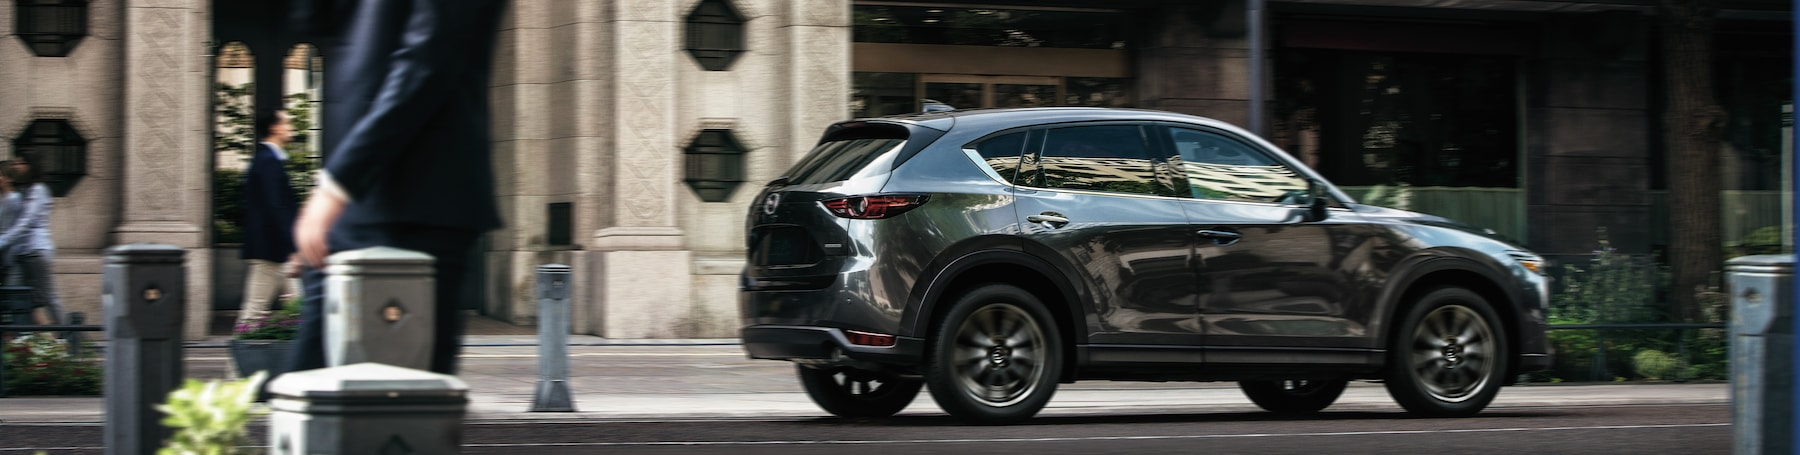 Jack Giambalvo Mazda is a Car Dealership near Lancaster PA | 2020 Mazda CX-5 driving downtown